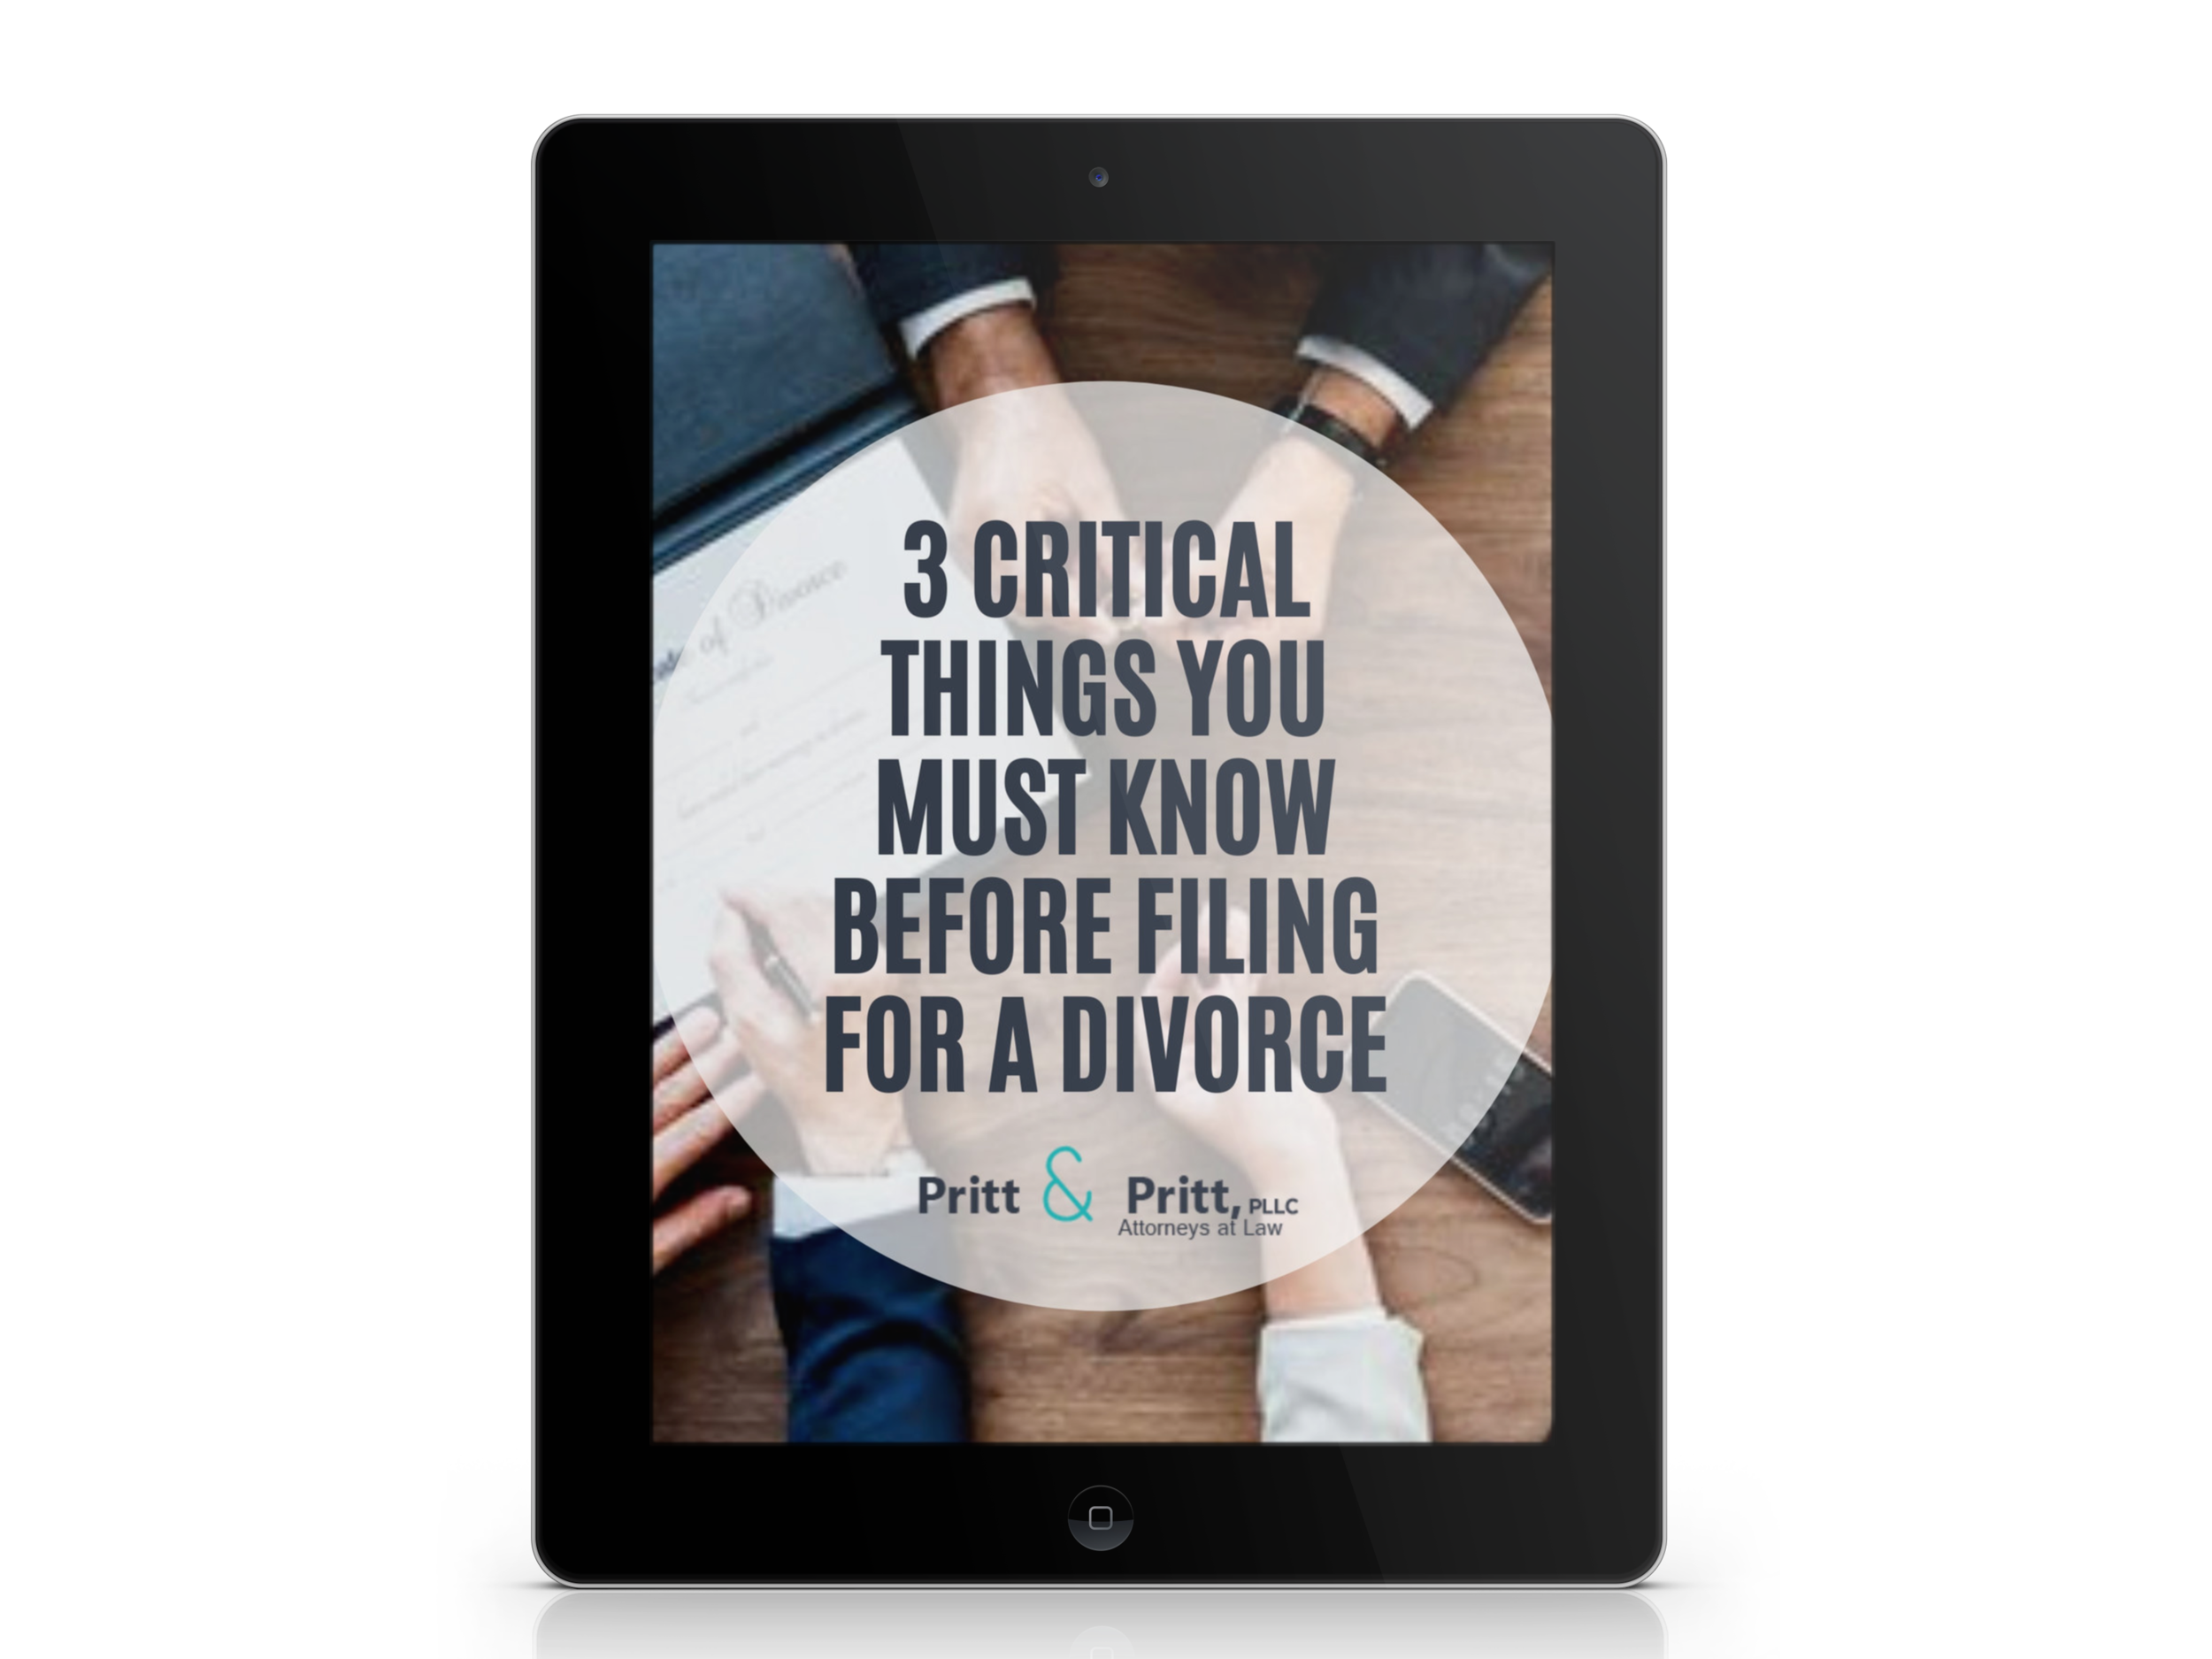 3 Critical Things You Must Know Before Filing for a Divorce